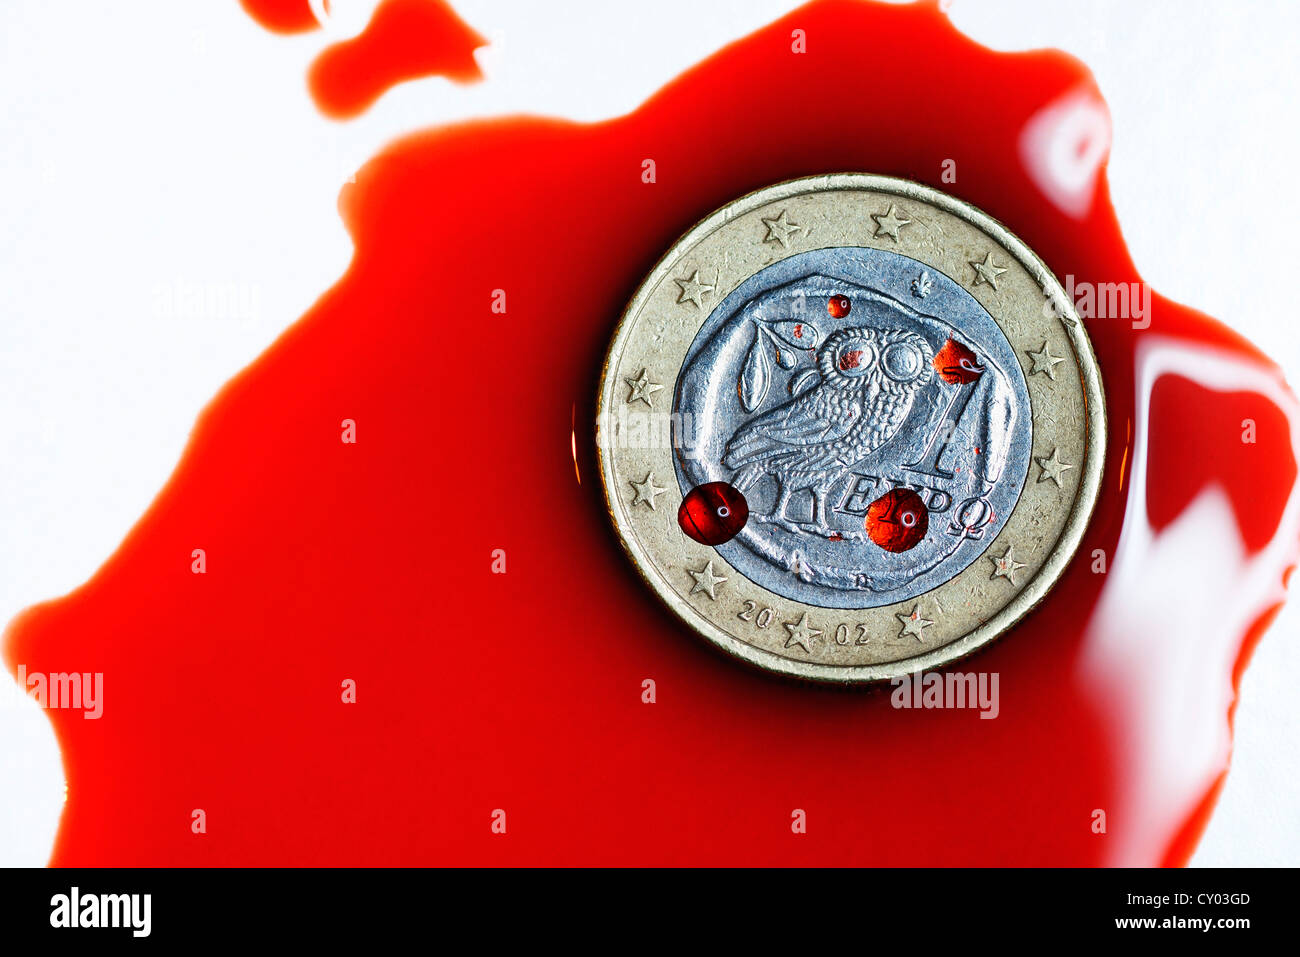 Greek euro in a pool of blood, symbolic image for the debt crisis in Greece - Stock Image